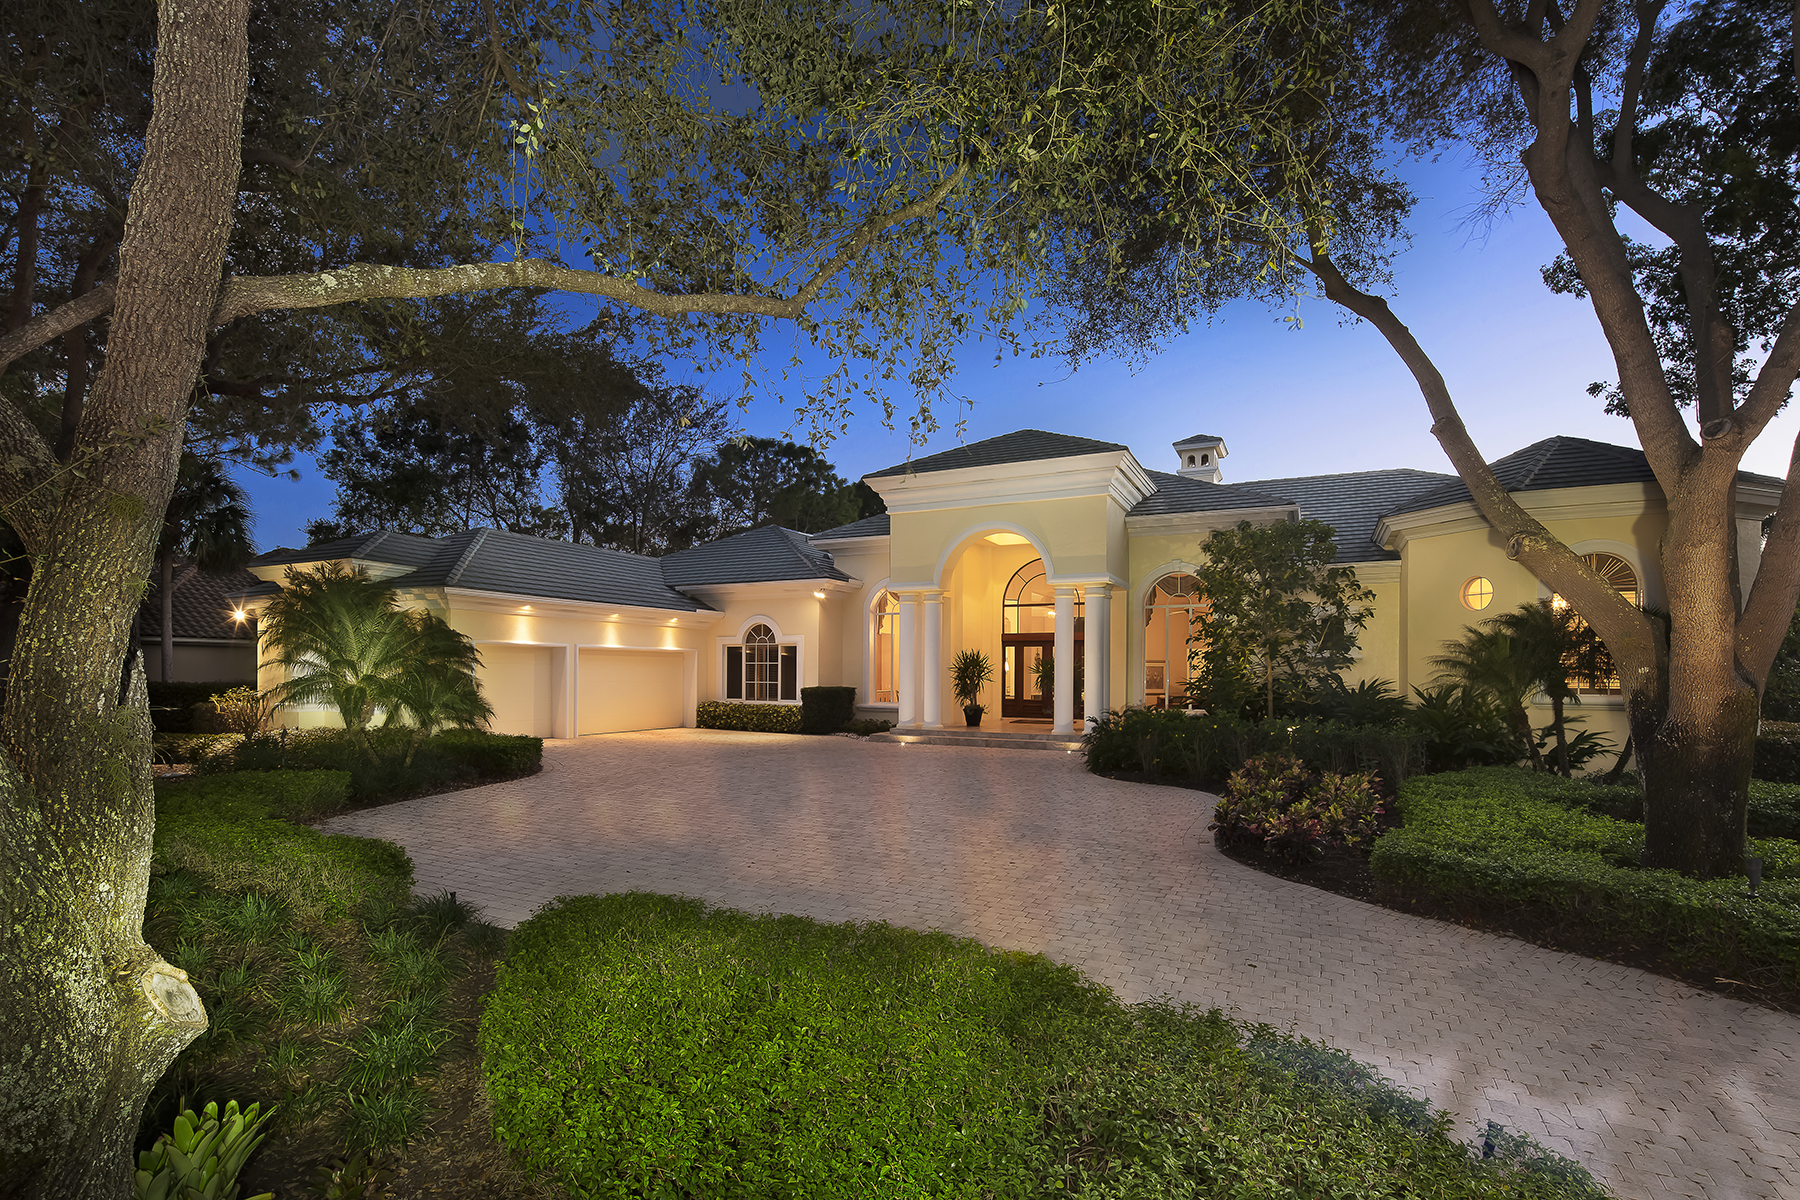 Single Family Home for Sale at Naples 2720 Buckthorn Way, Naples, Florida 34105 United States